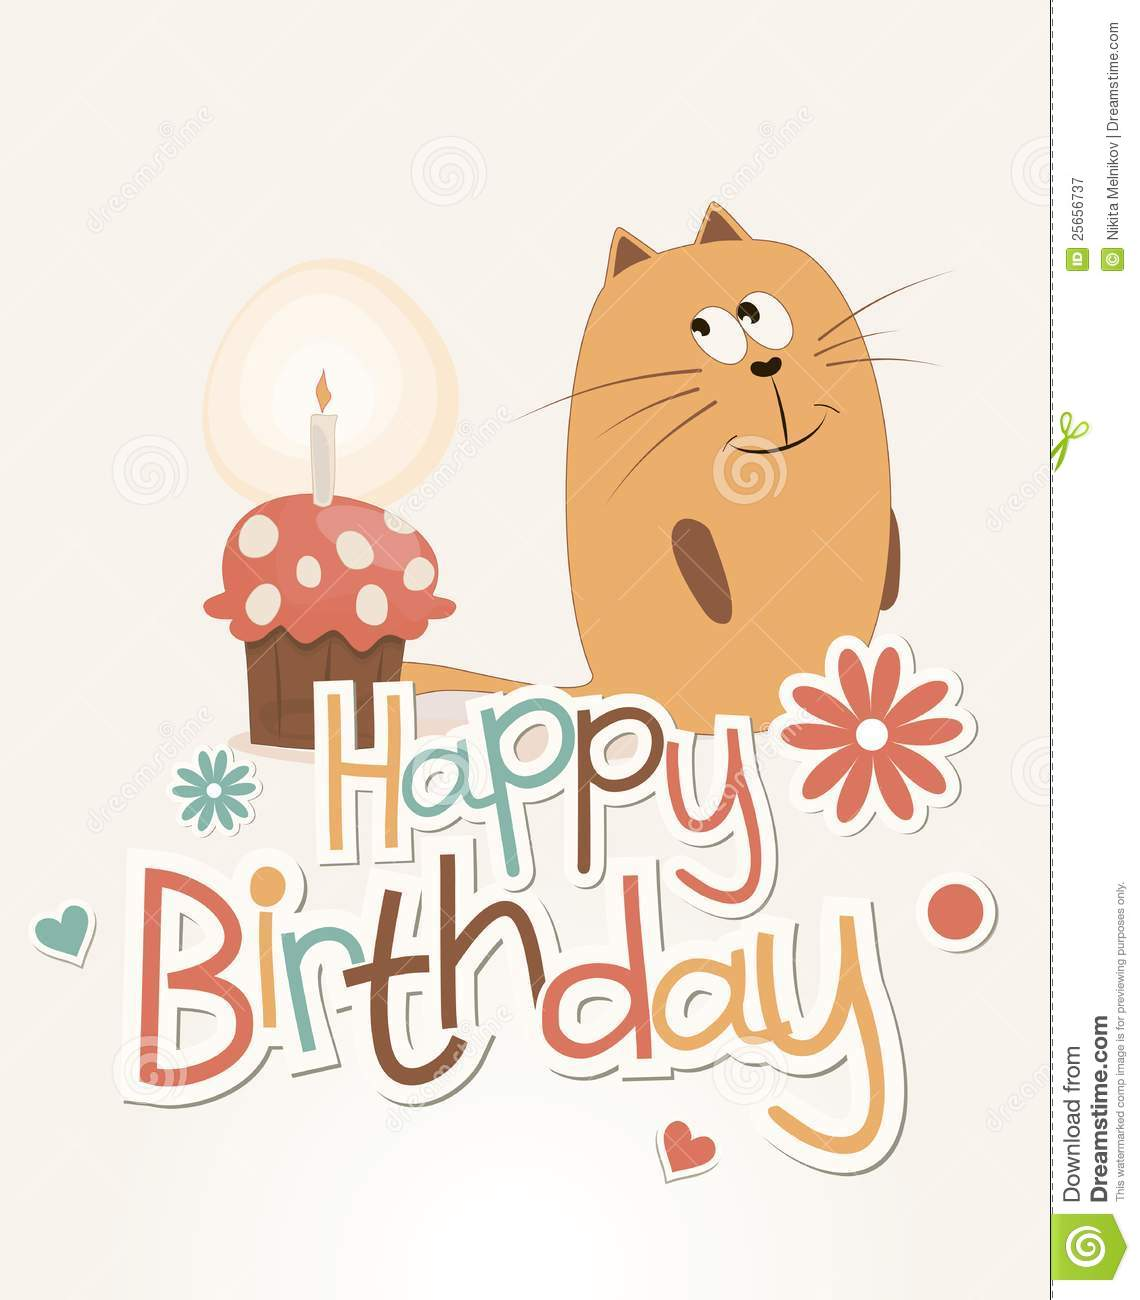 Cute Happy Birthday Card Royalty Free Photography Image – Unique Happy Birthday Greetings